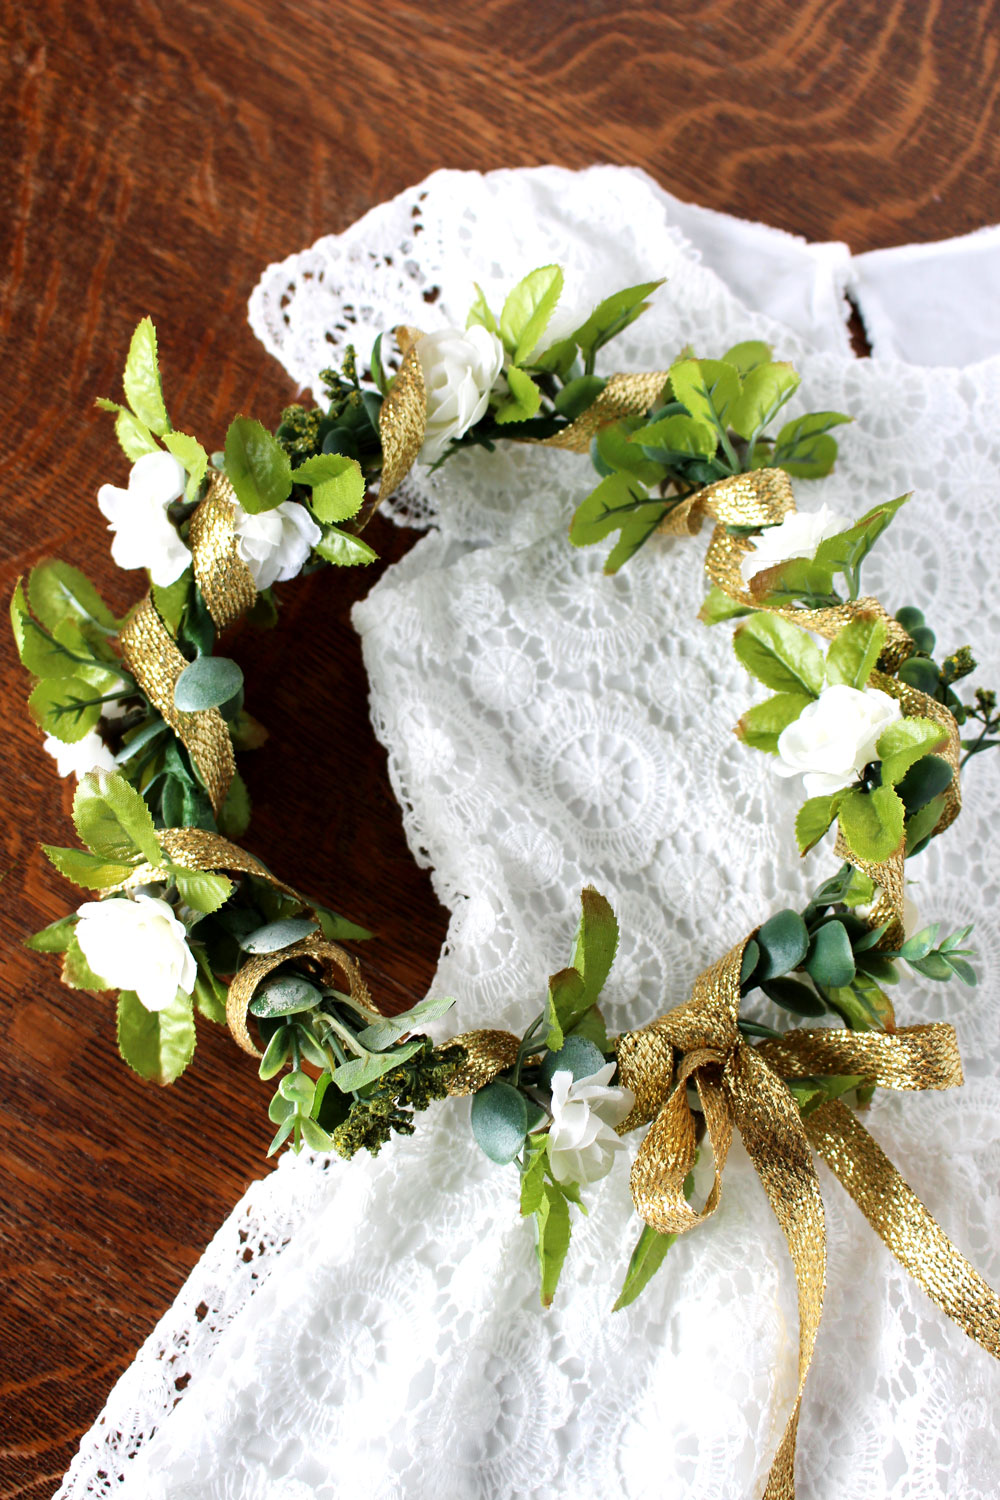 Diy wedding or midsummers flower crown welcome to nanas pretty flower crowns izmirmasajfo